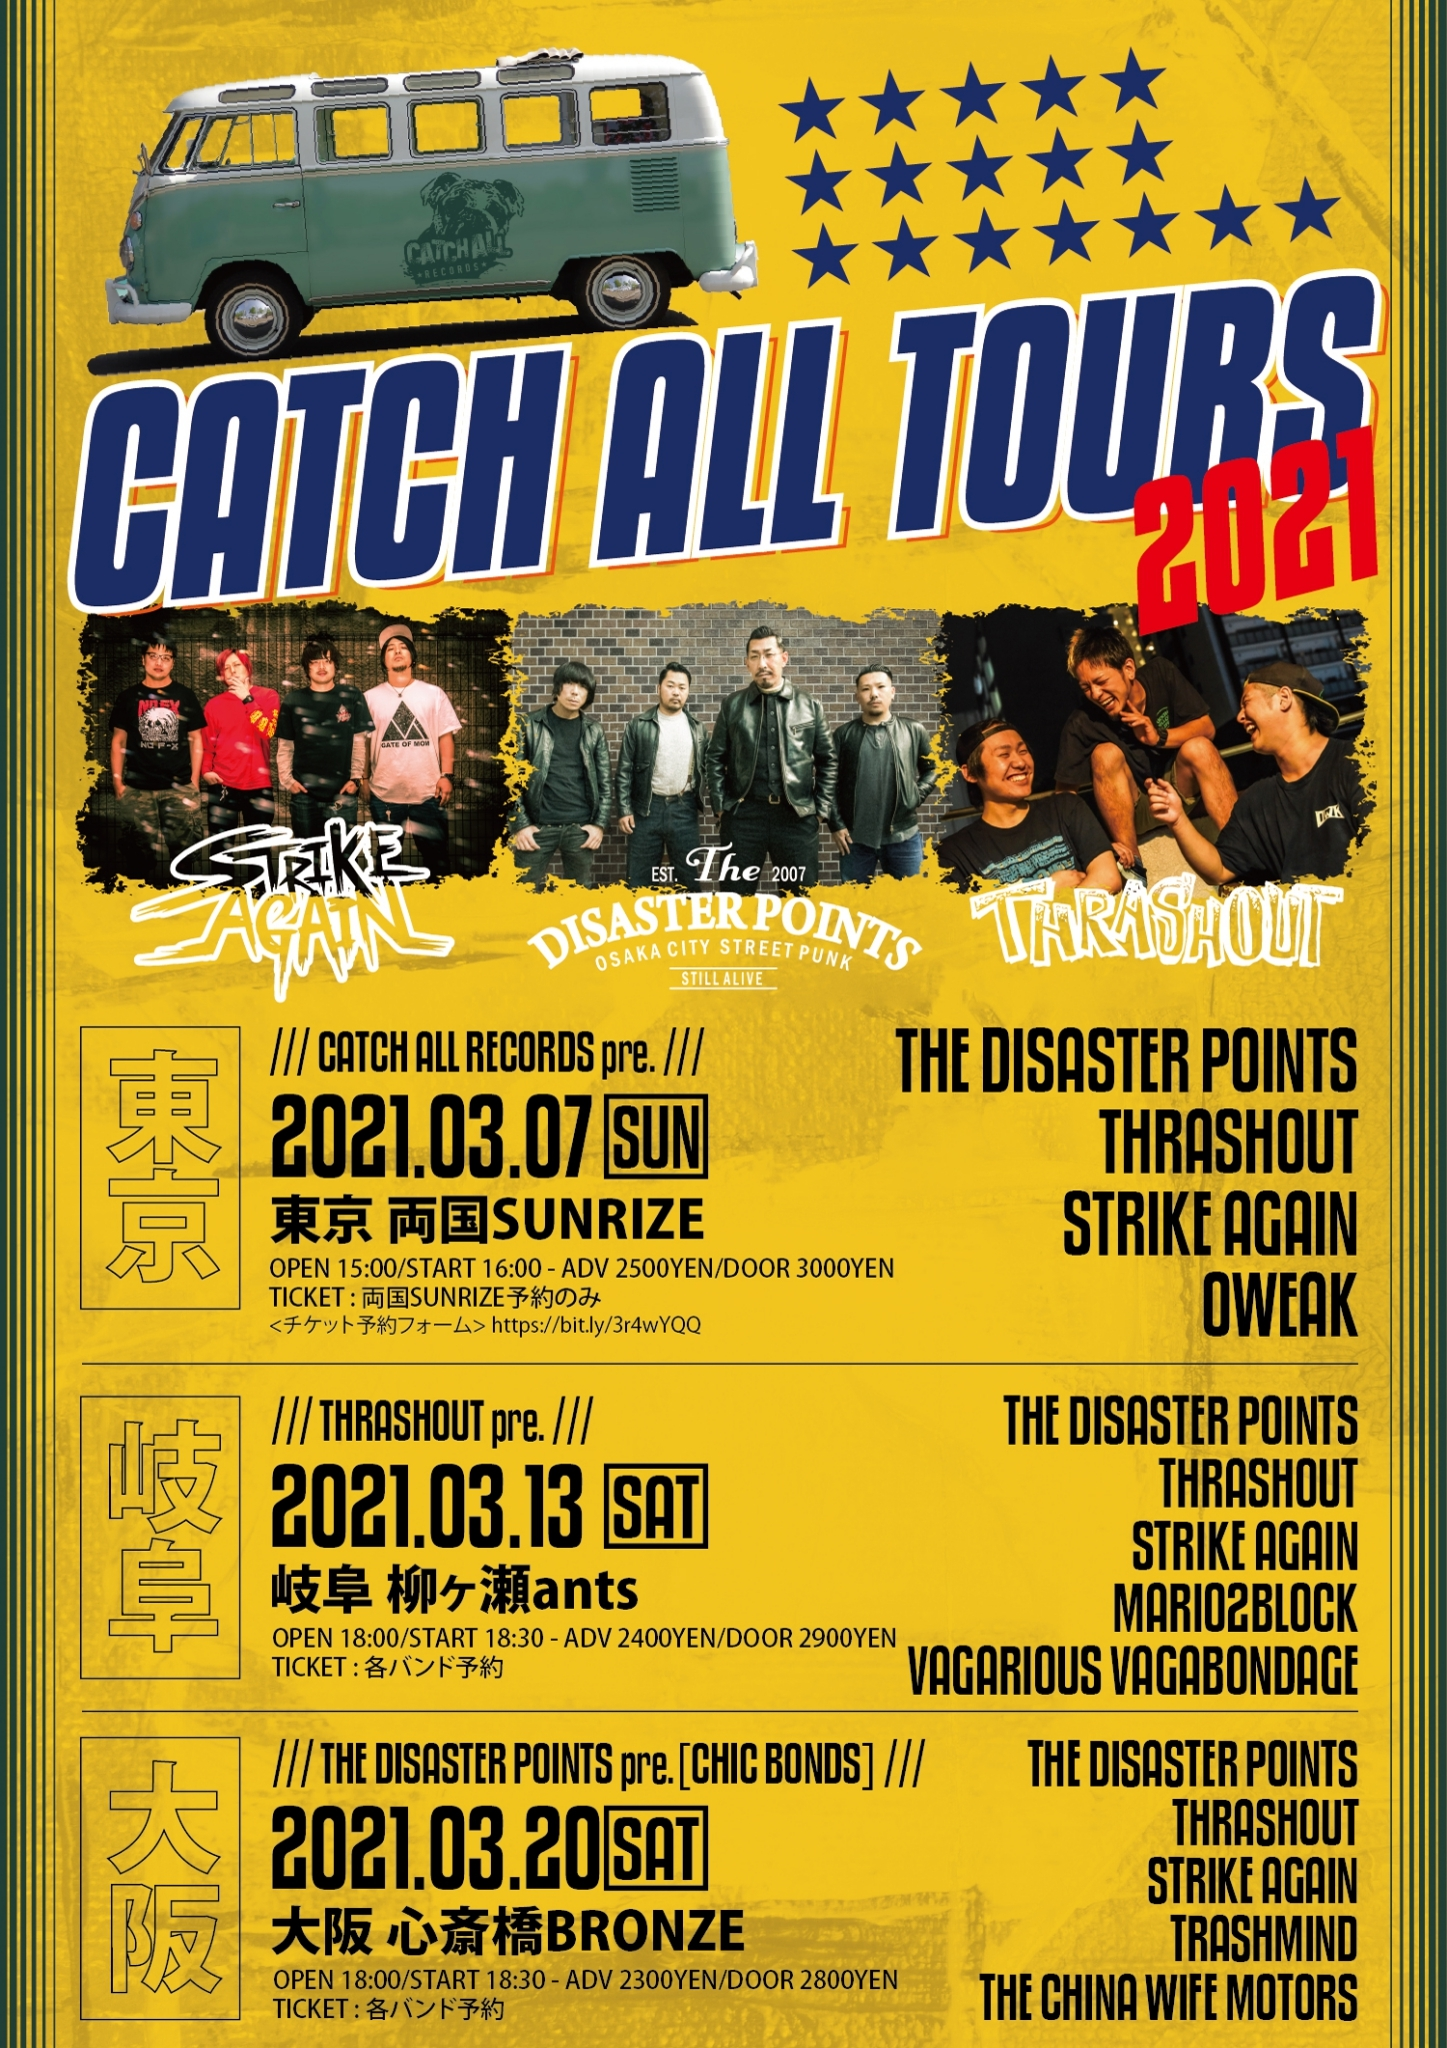 CATCH ALL TOURS 2021 〜岐阜編〜